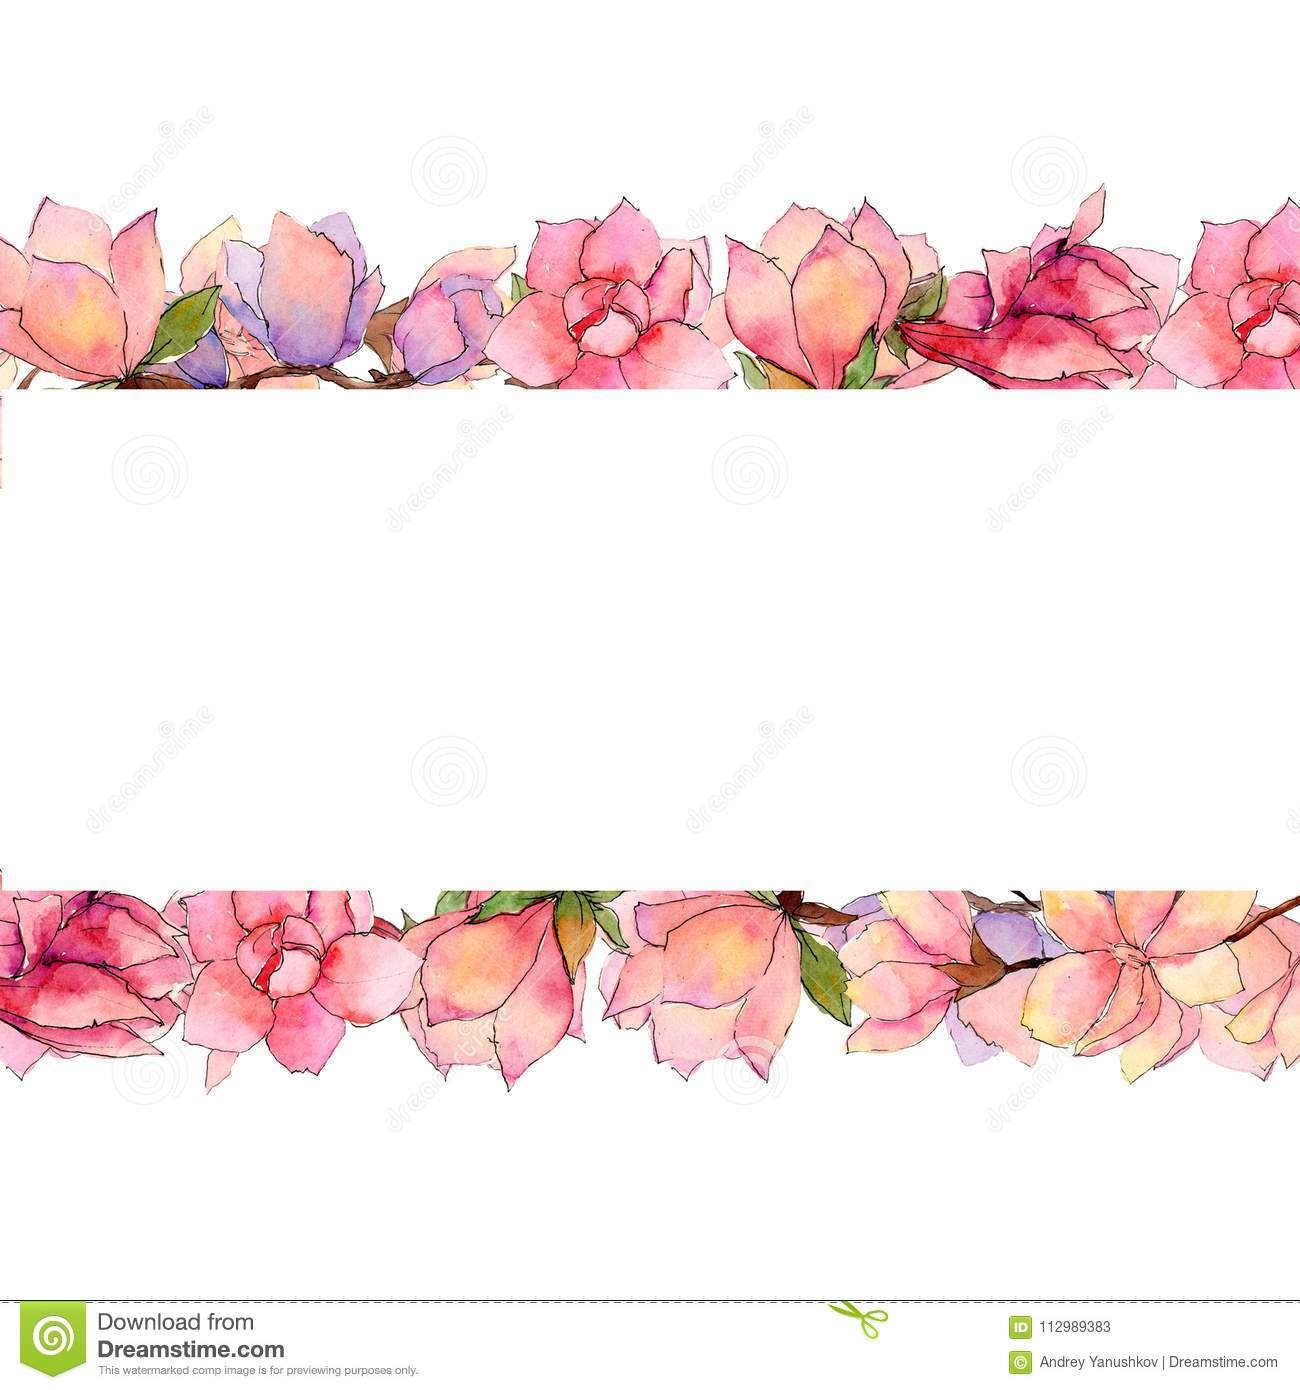 Wildflower magnolia flower frame in a watercolor style.